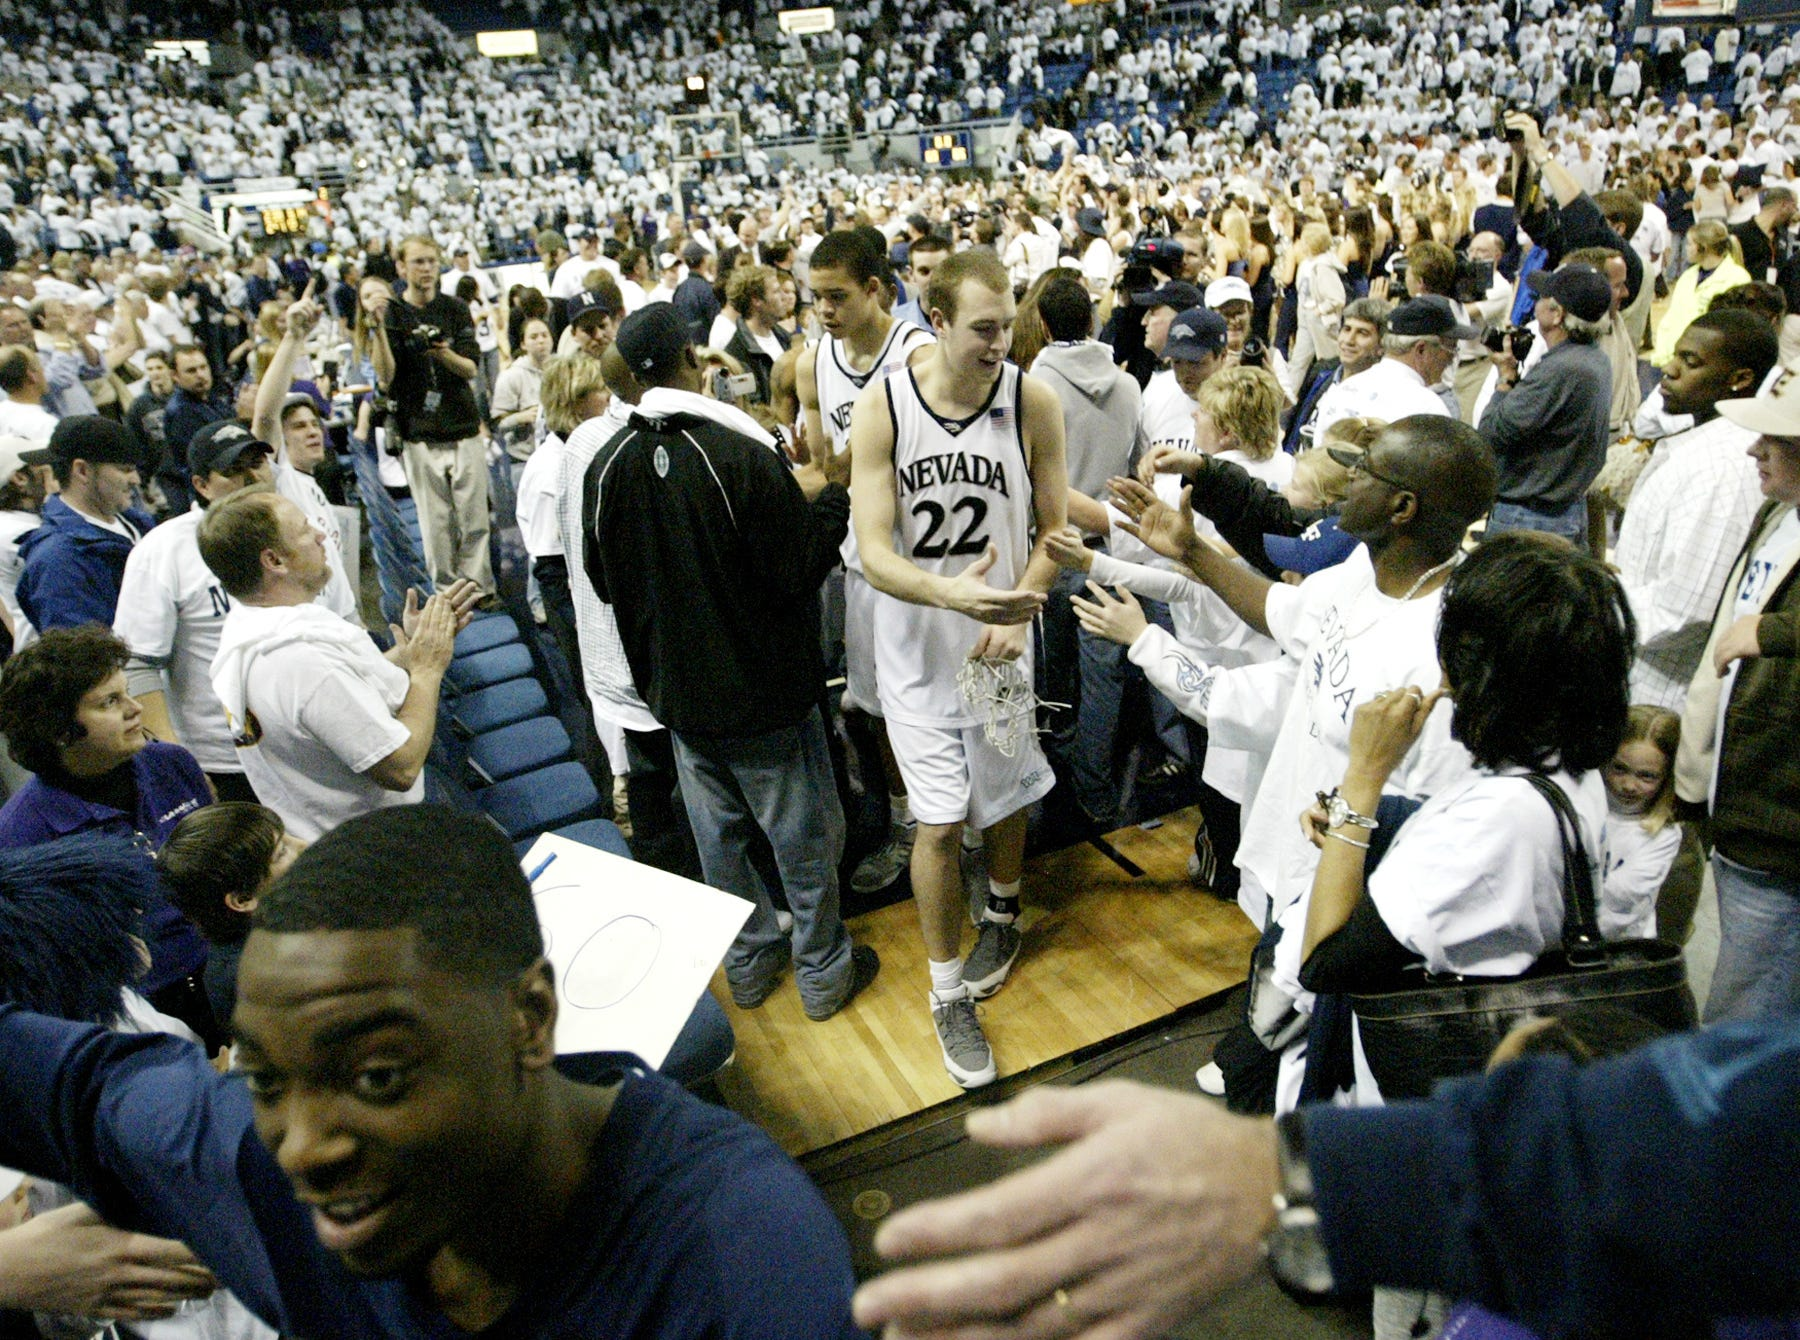 2007: Celebrating a win over New Mexico State.